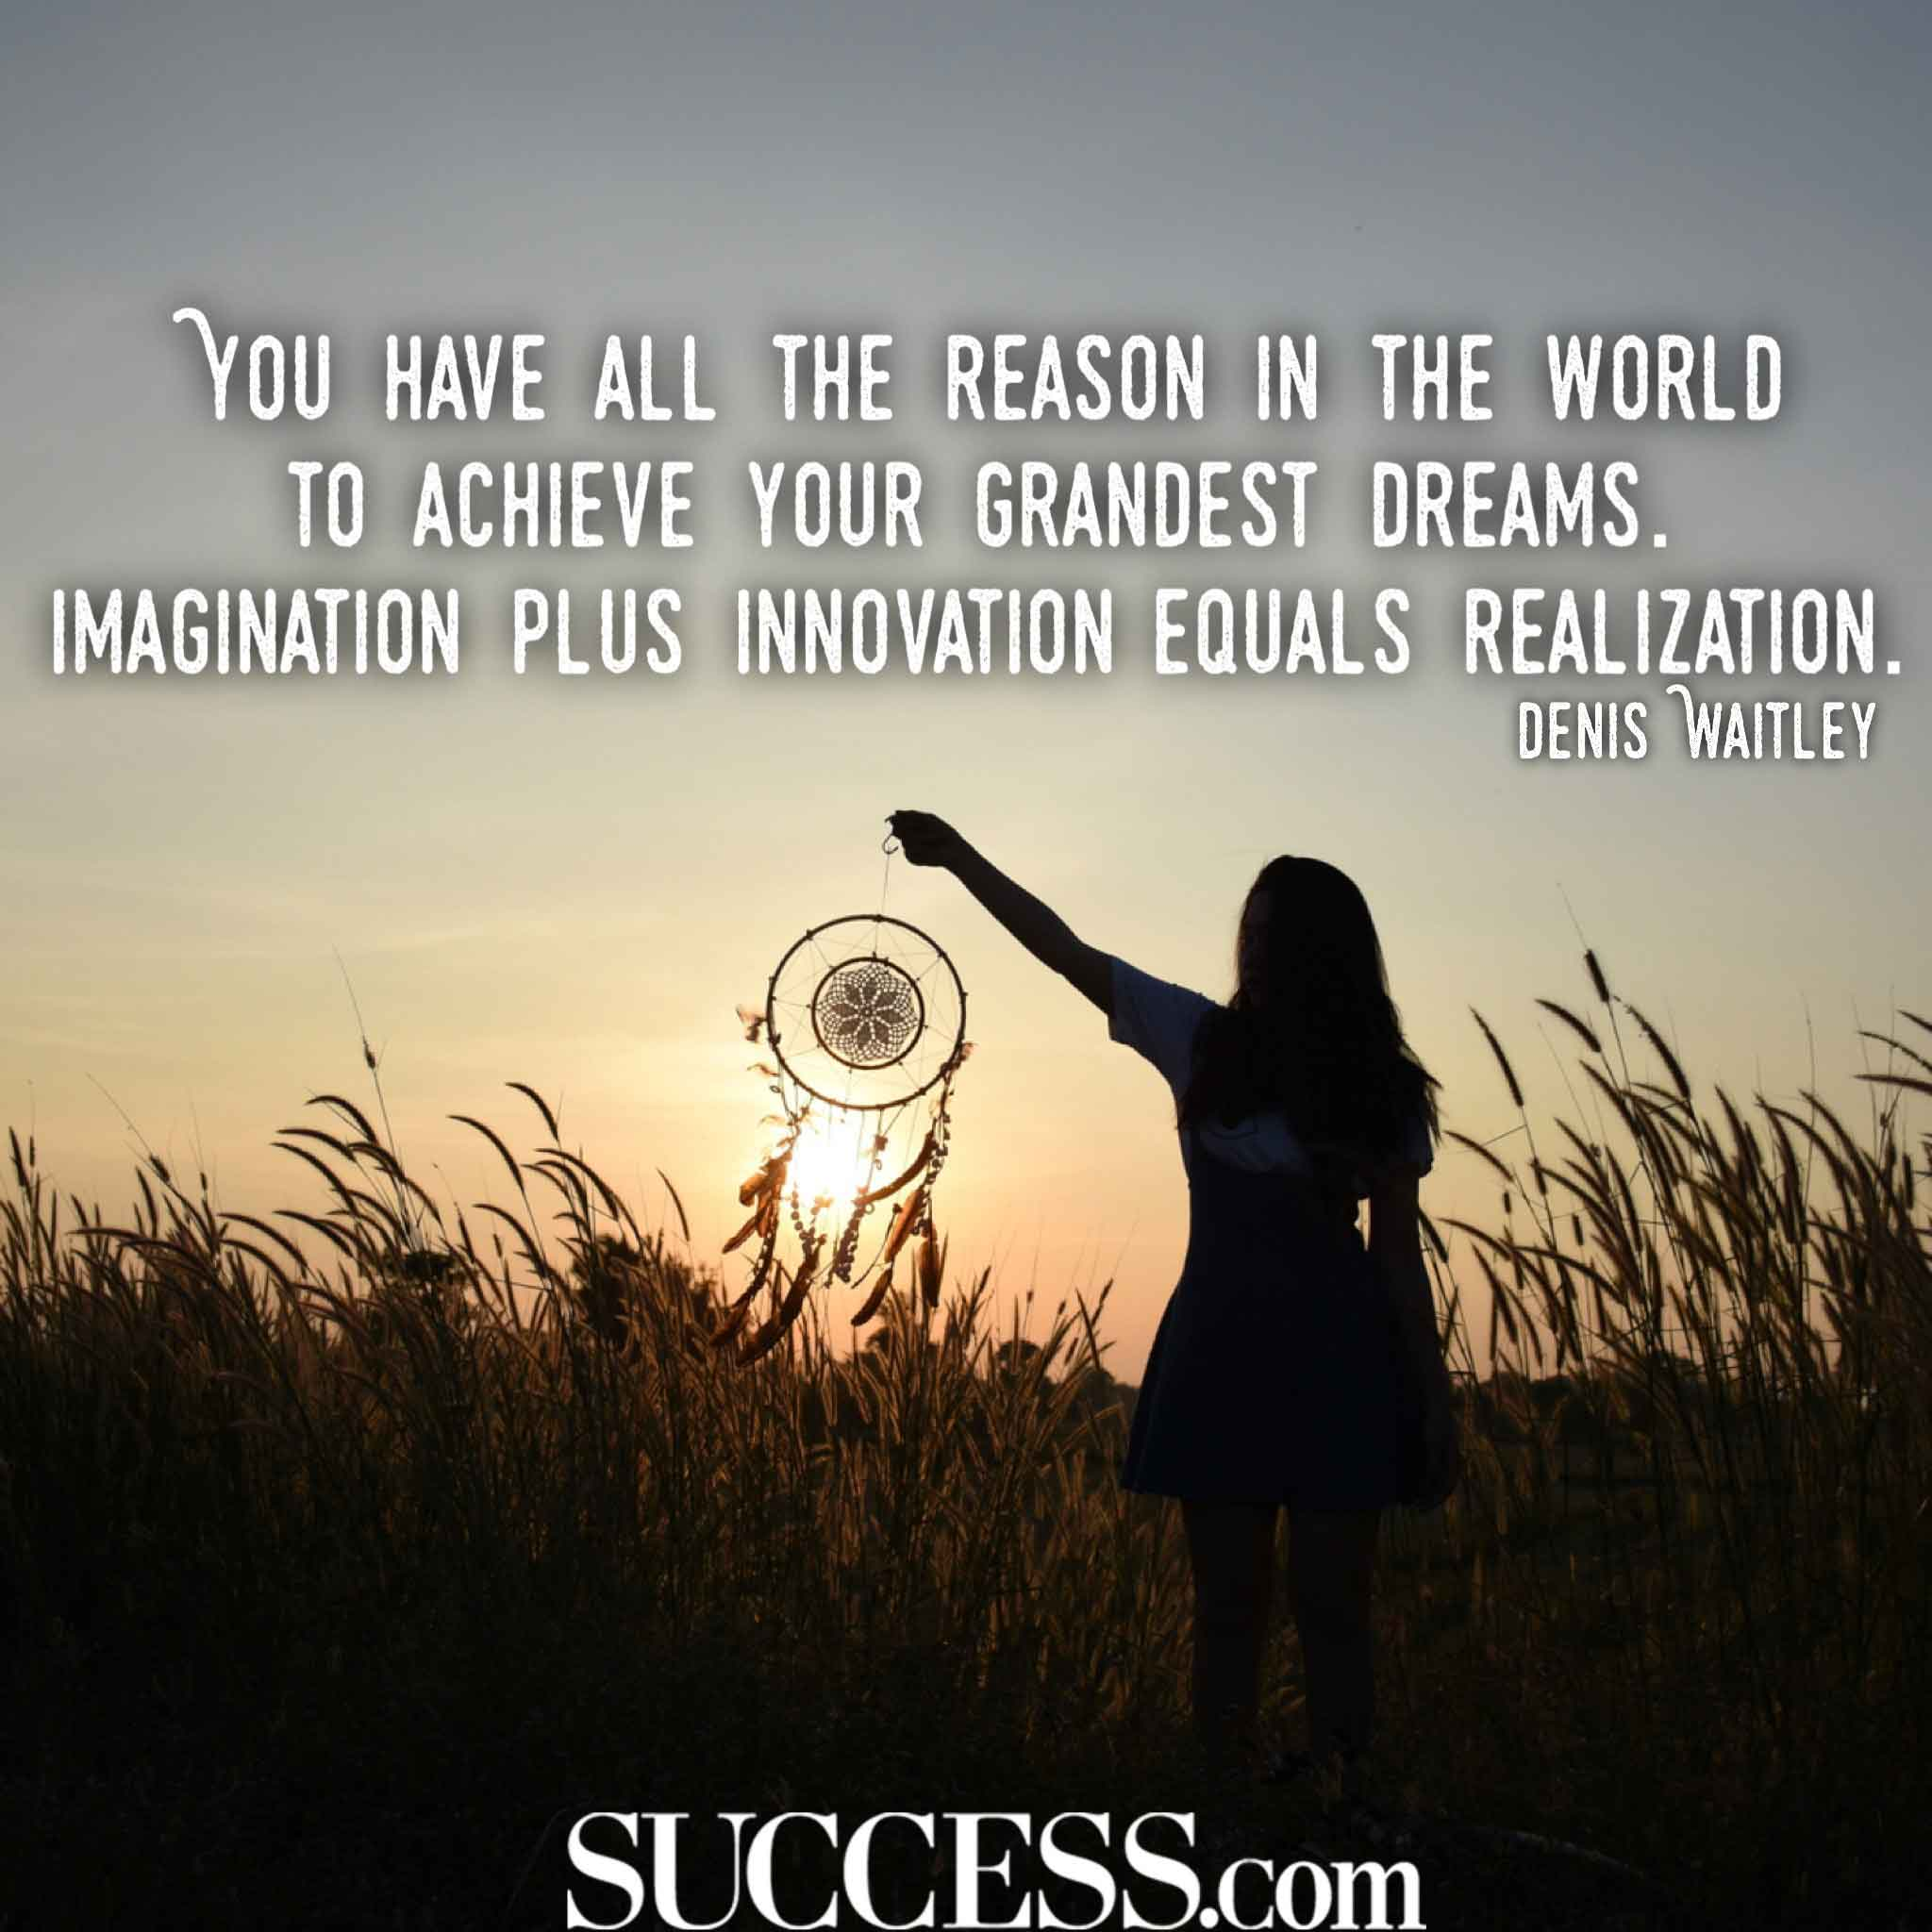 15 Inspirational Quotes to Unlock Your Imagination